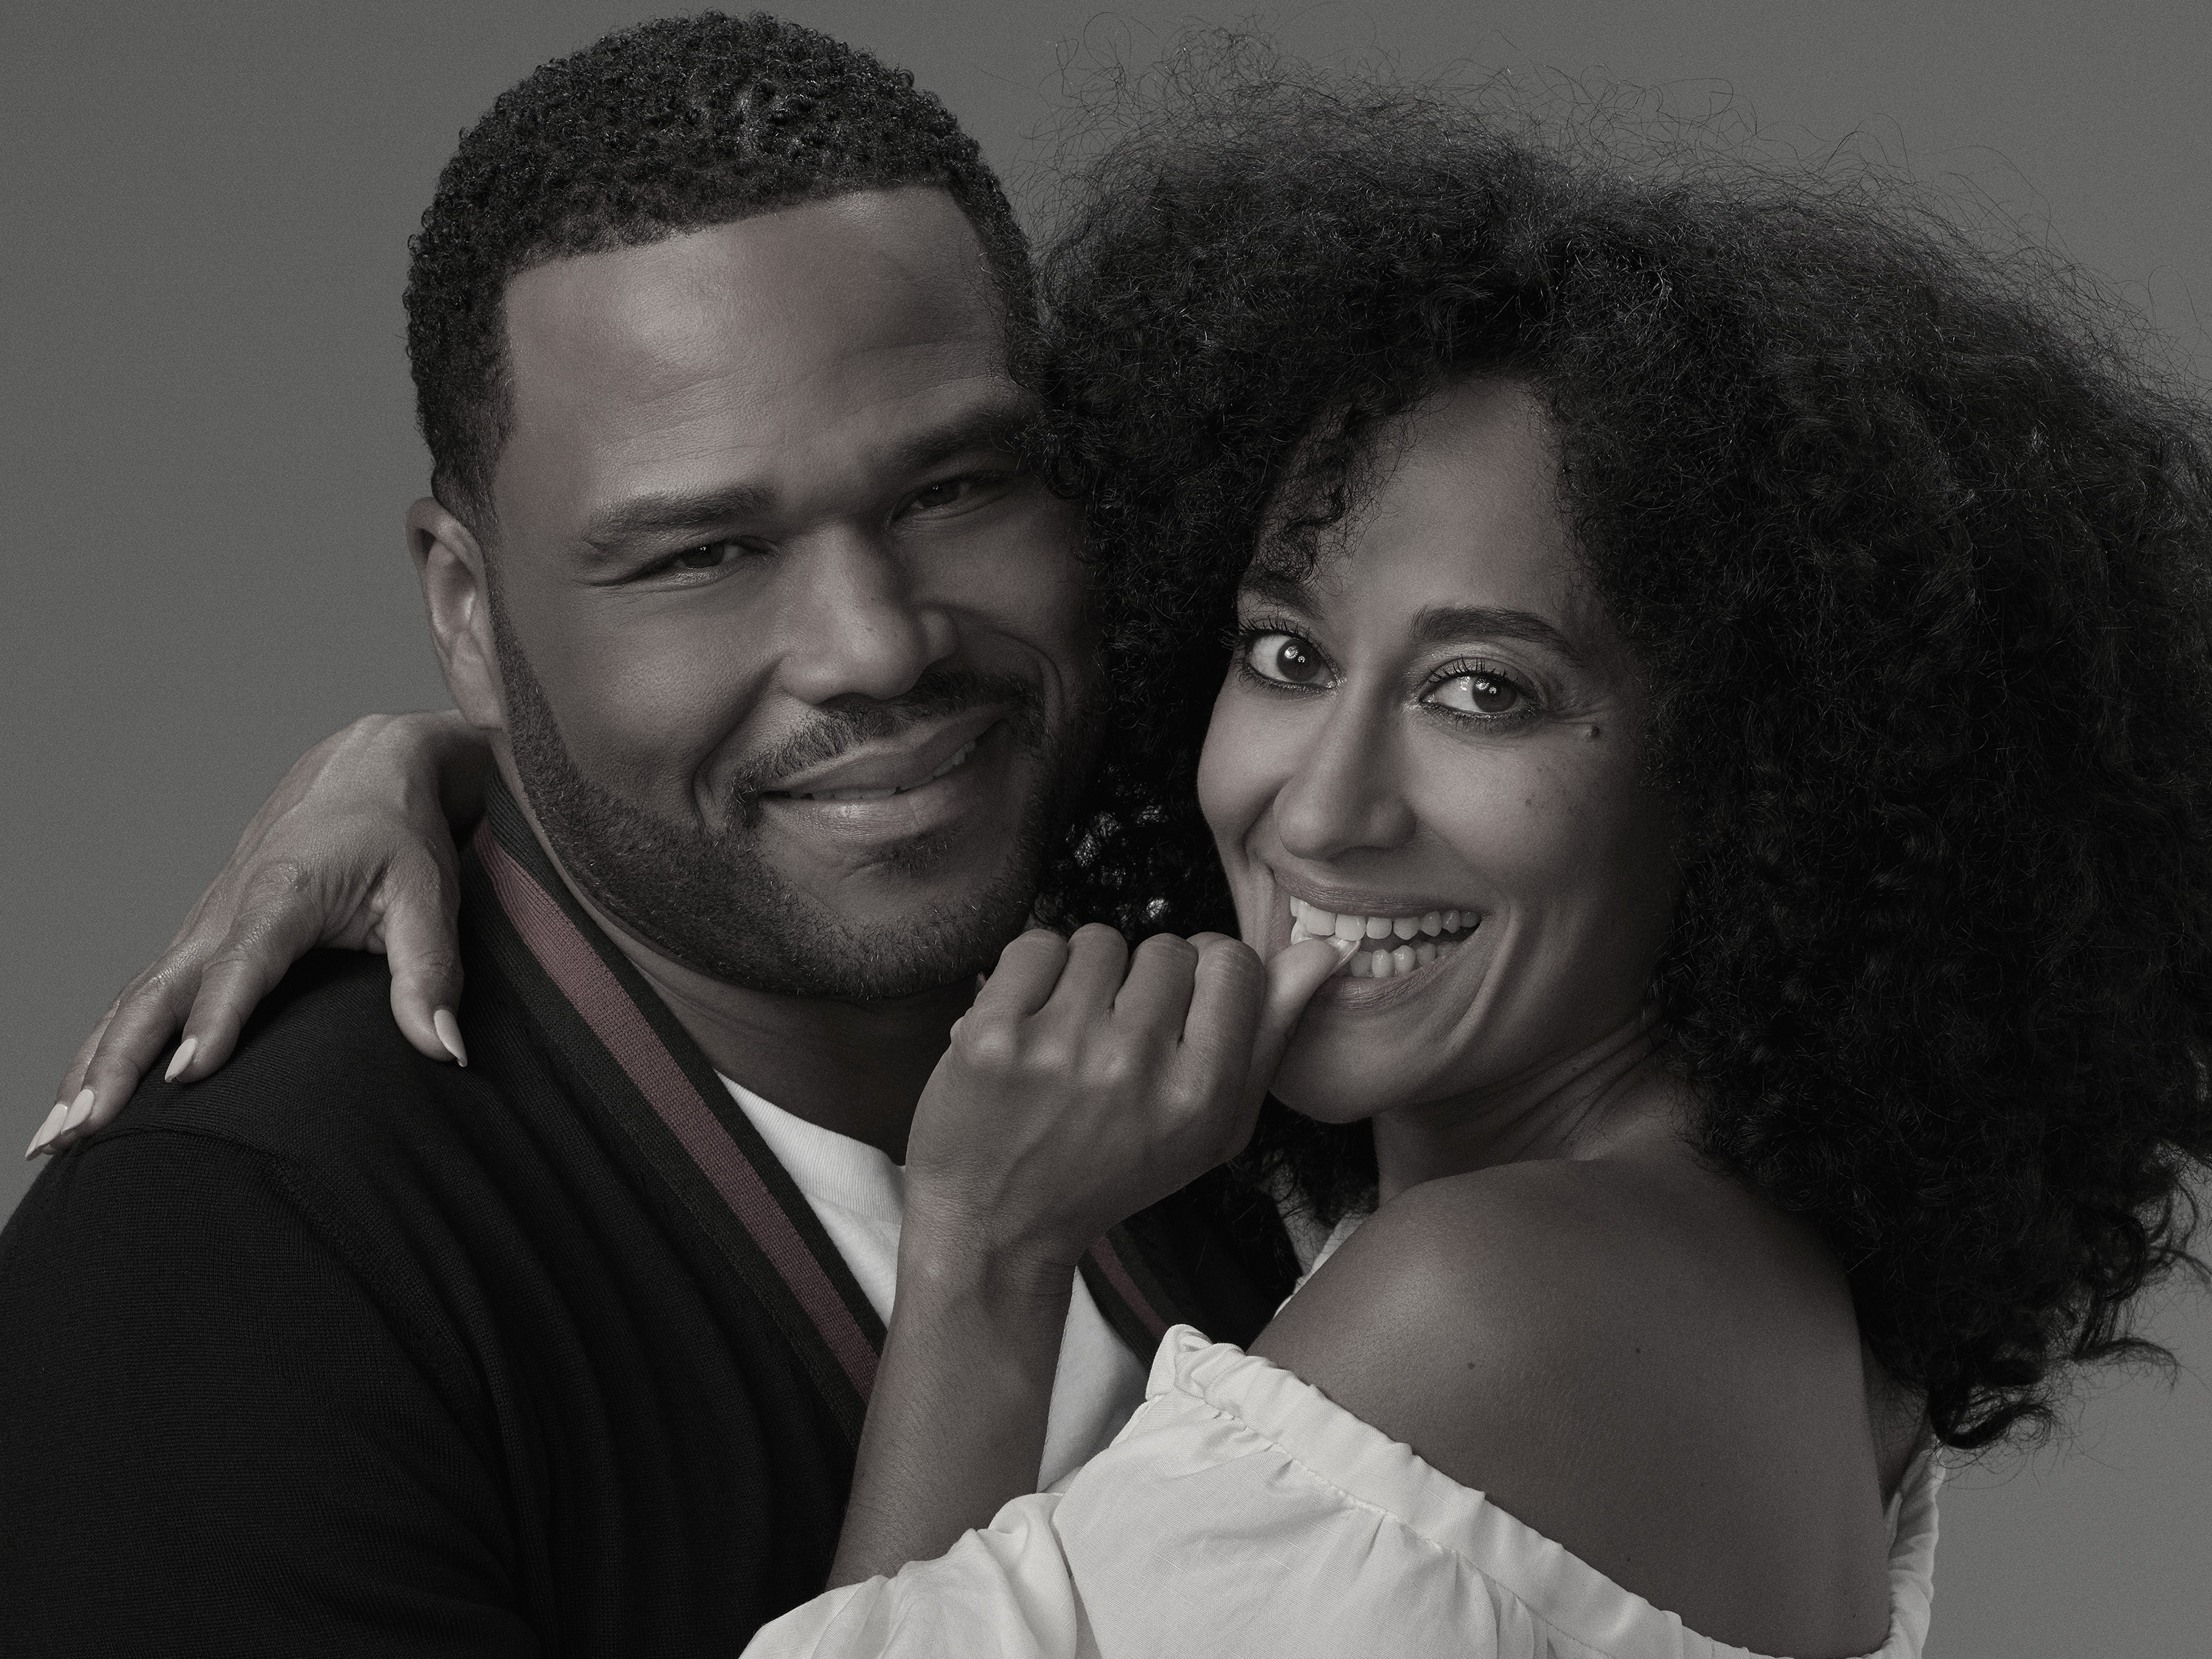 Traci Young Byron Wedding.Black Ish Stars Discuss Dre And Bow S Troubled Marriage